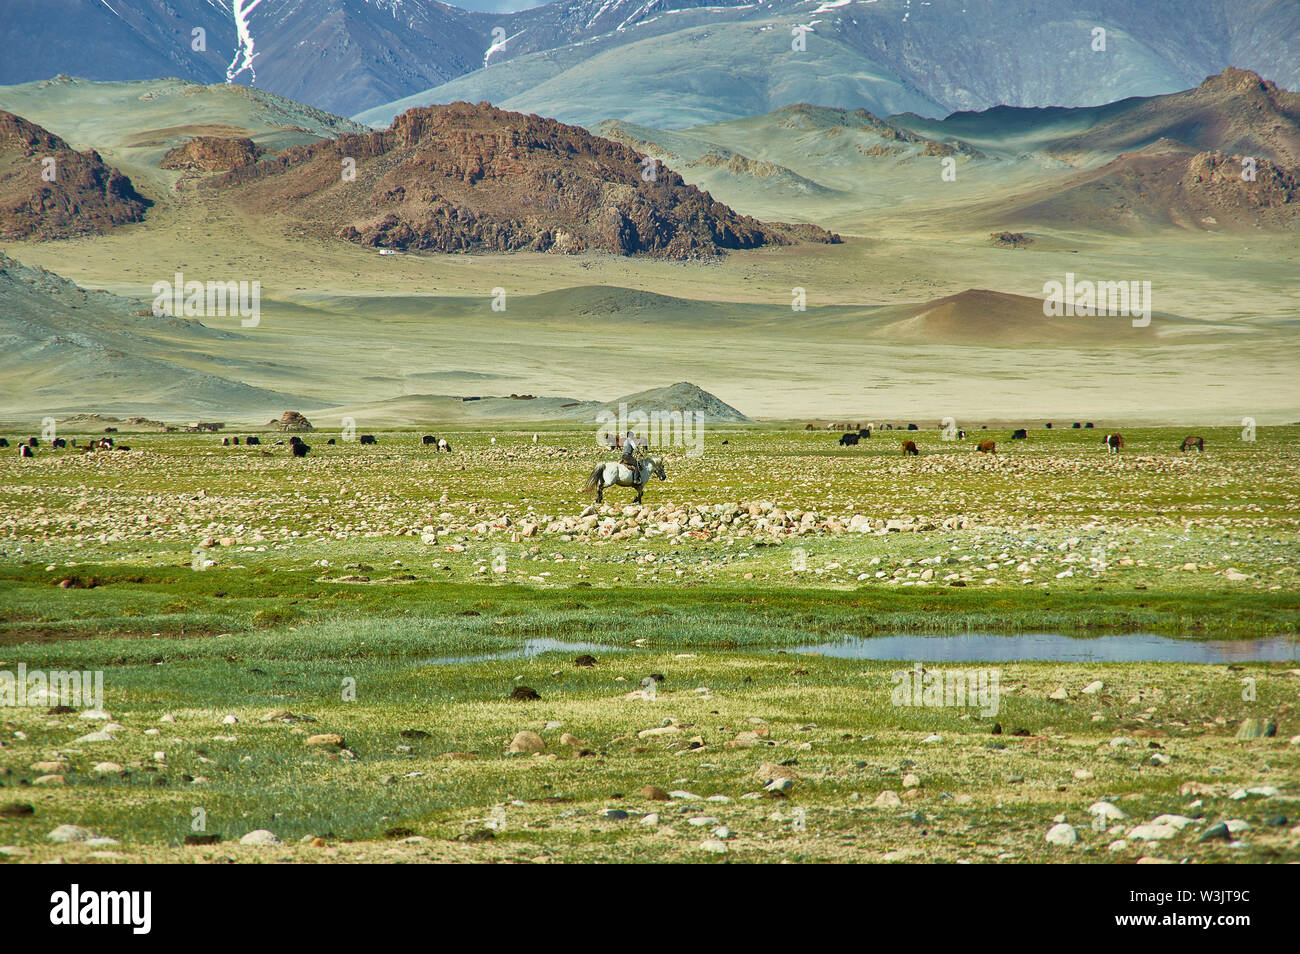 Mongolian Altai. Nomad drives herd to pasture  Scenic valley on the background of the snowcapped mountains. - Stock Image